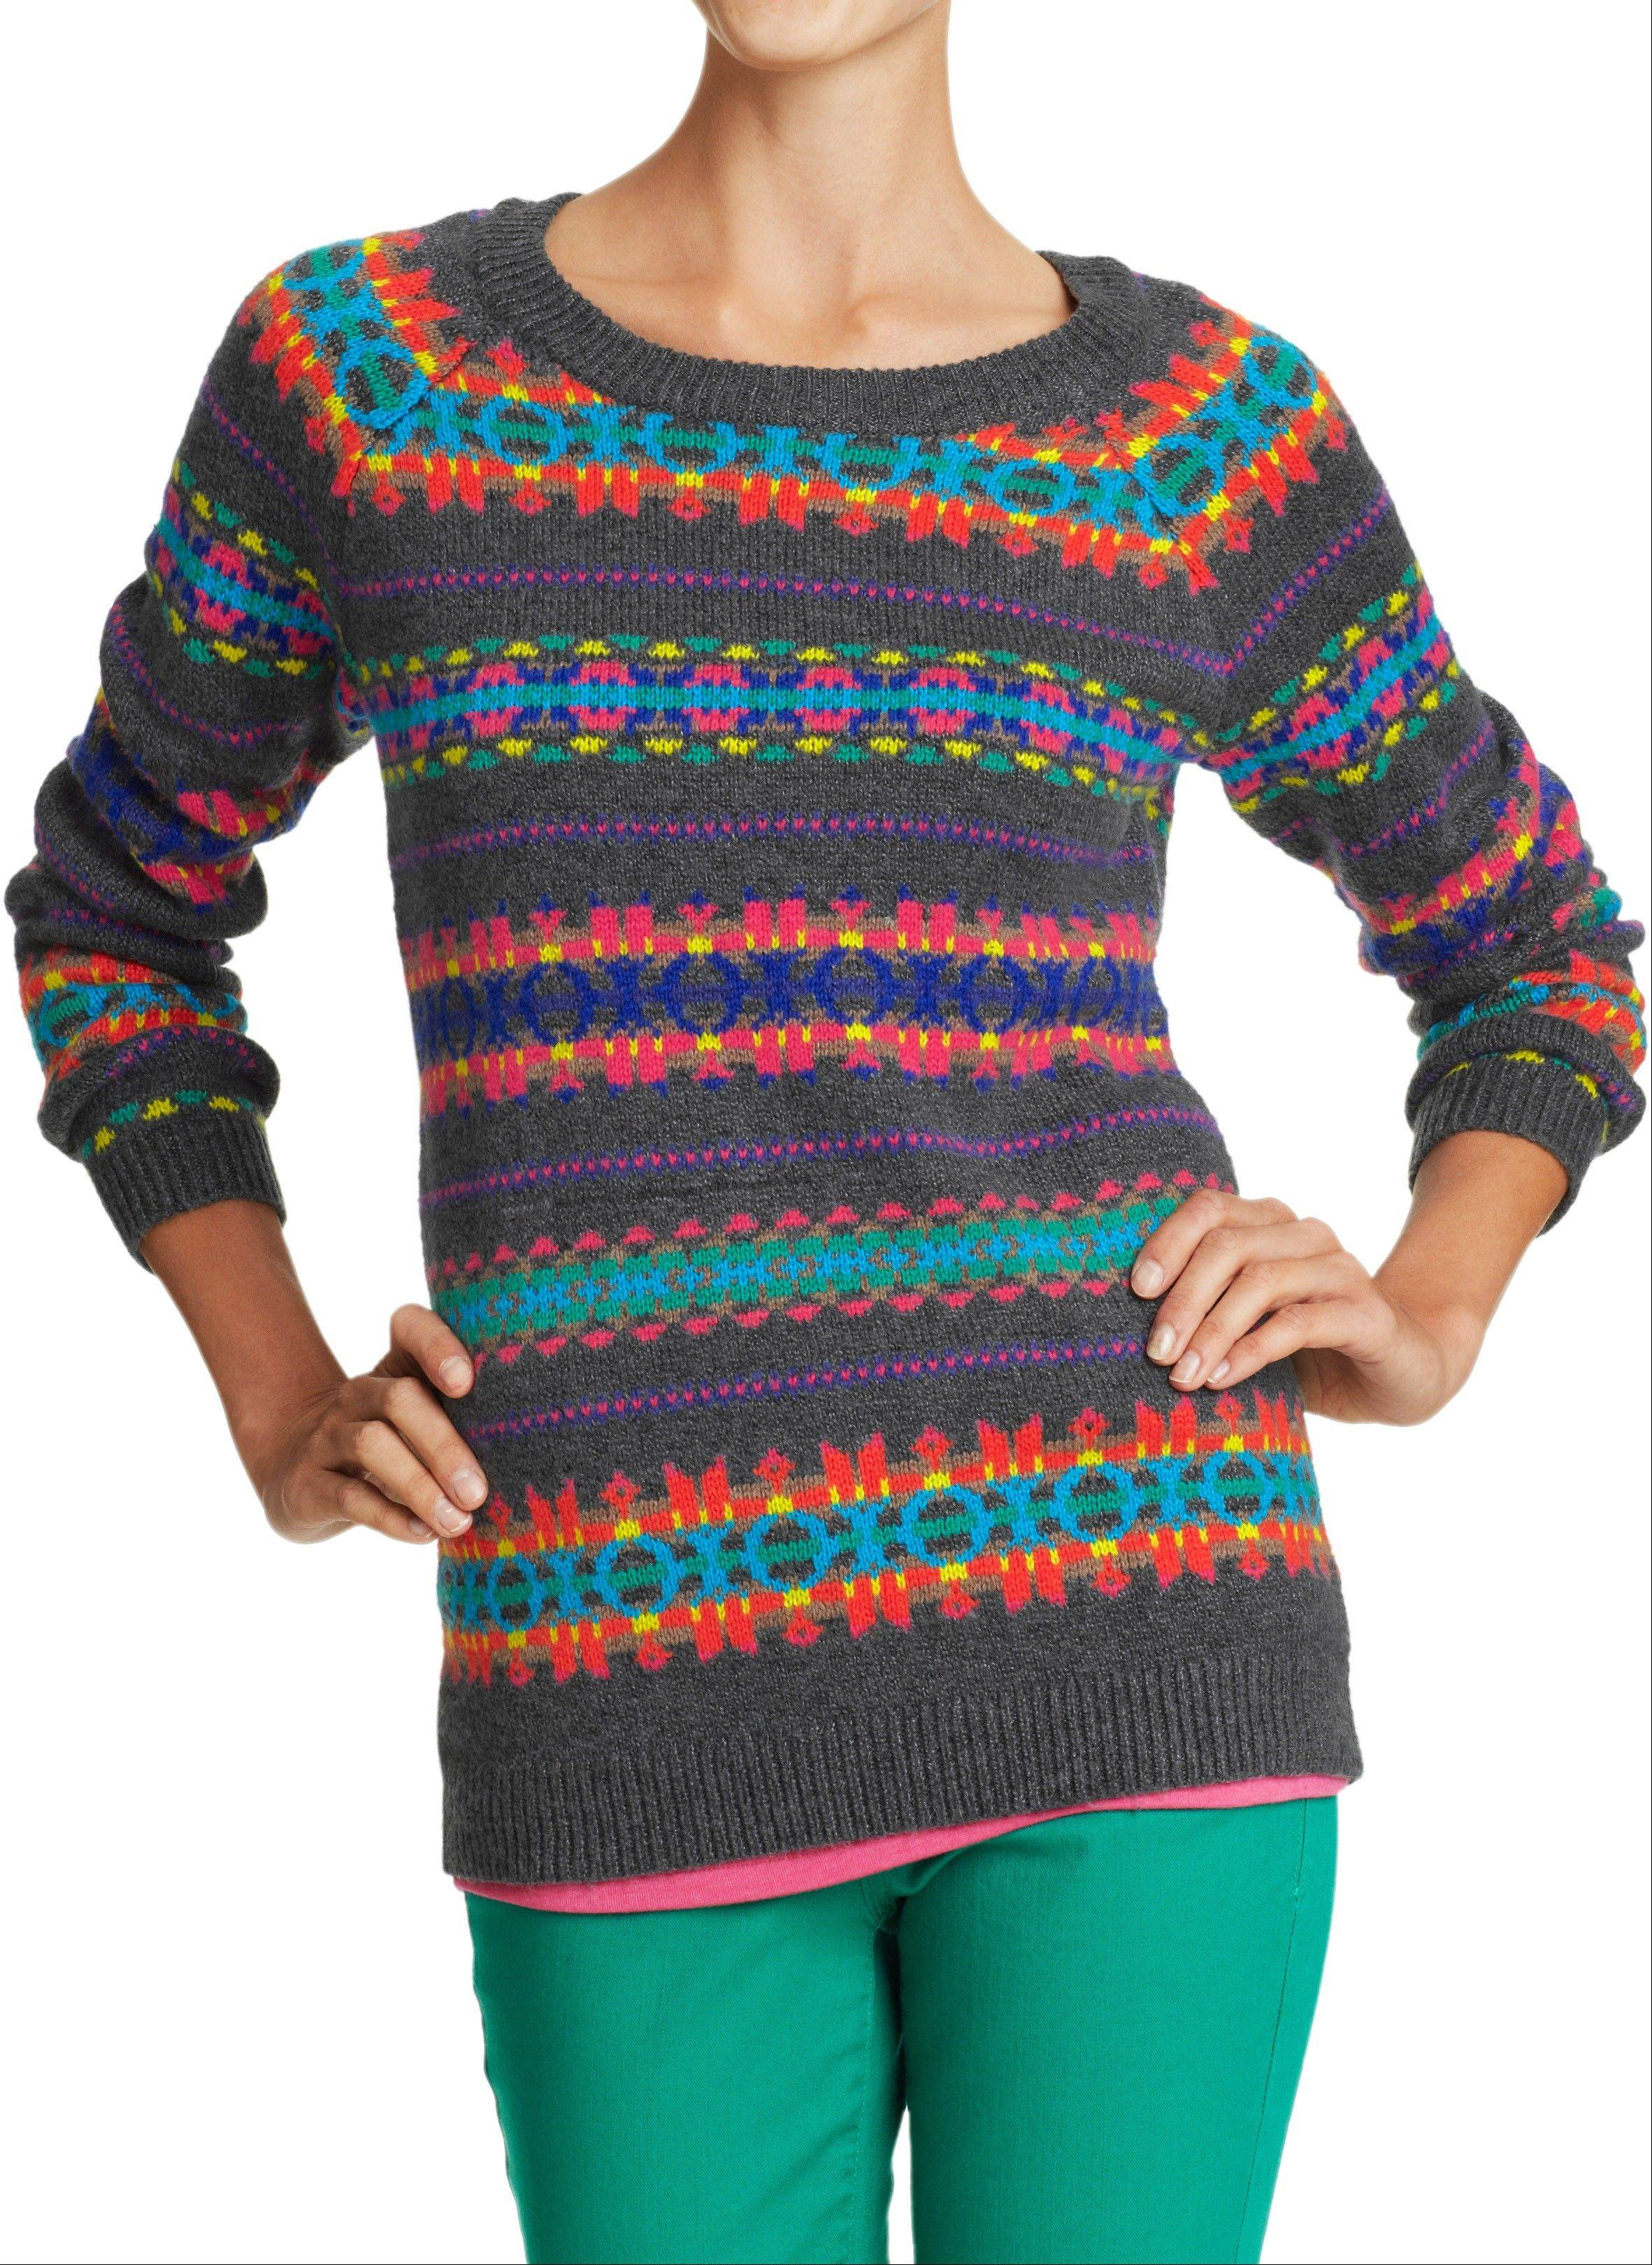 A a rib-knit crew neck, cuffs and hem sweater of soft, medium-weight cotton blend with an overall fair-isle-inspired pattern.